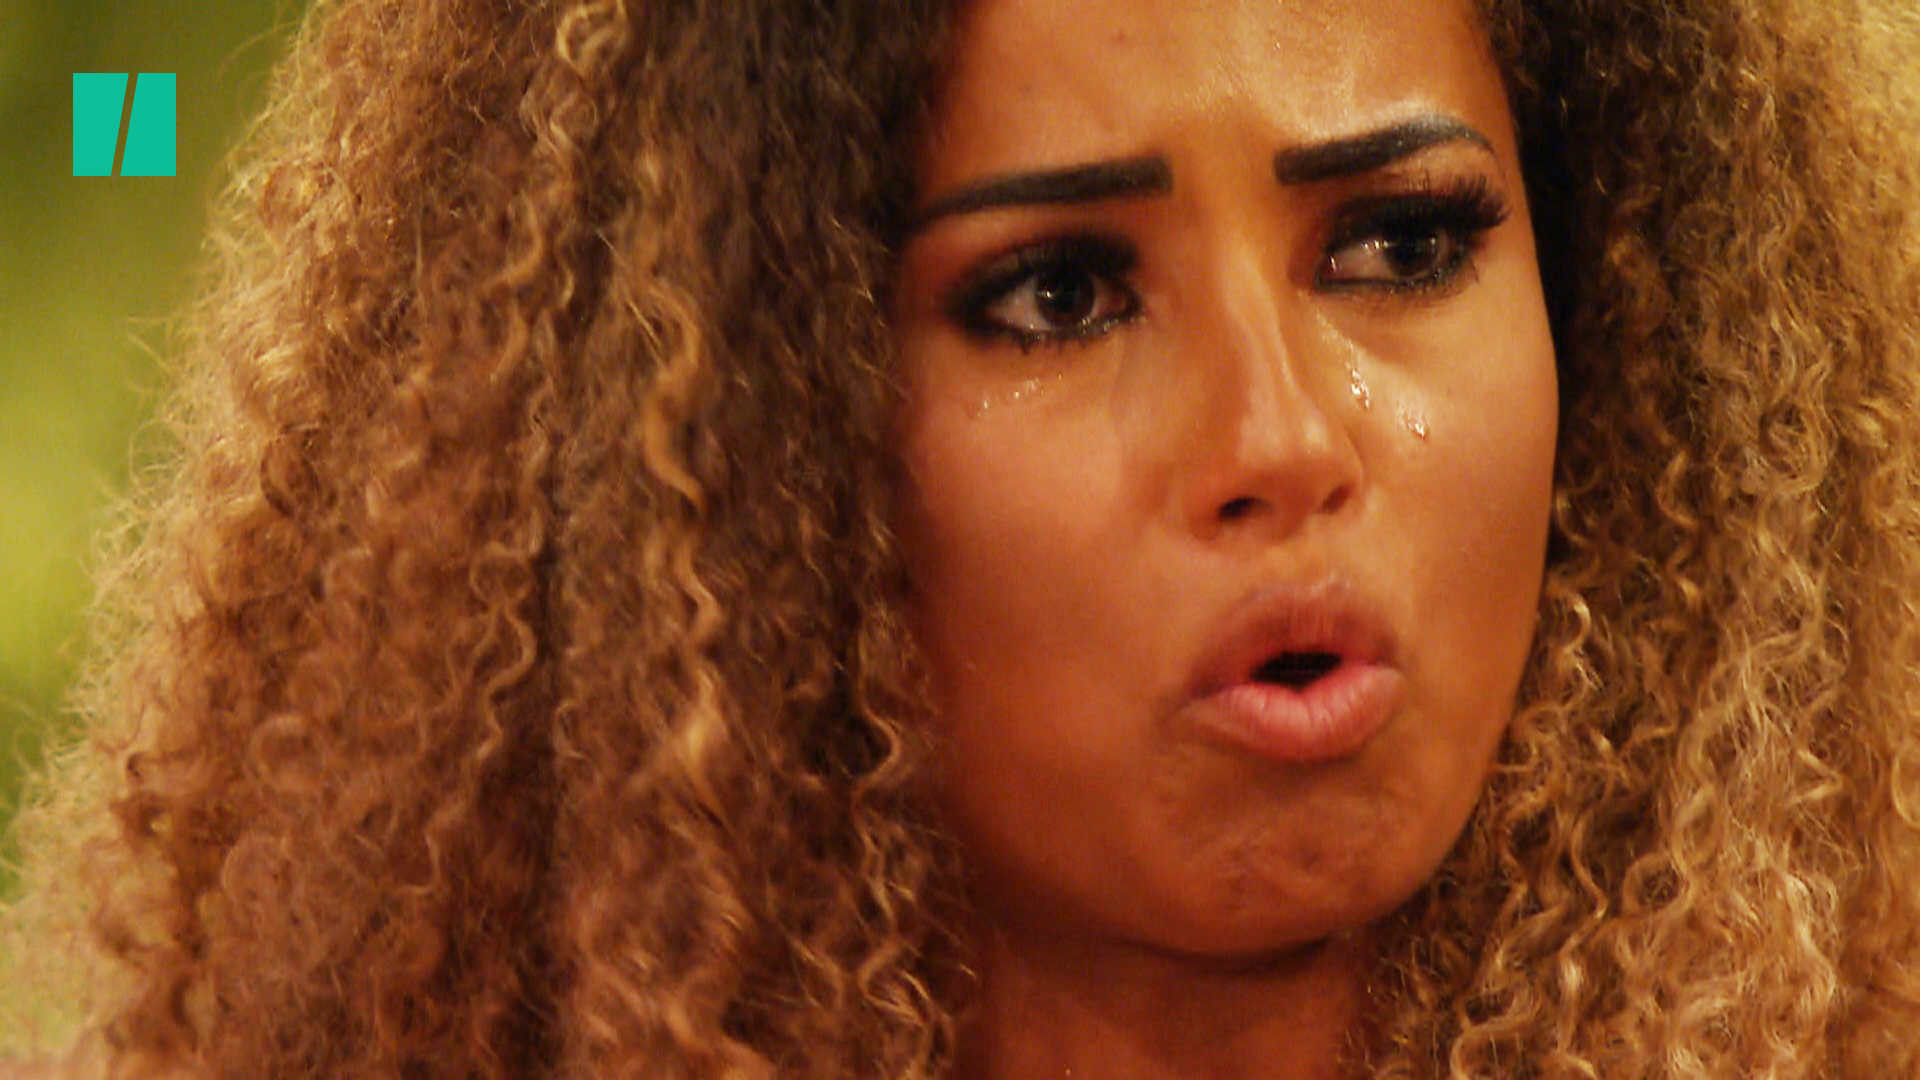 Love Island Unpacked: The Recoupling Causes Tears, Tantrums And Heartbreak